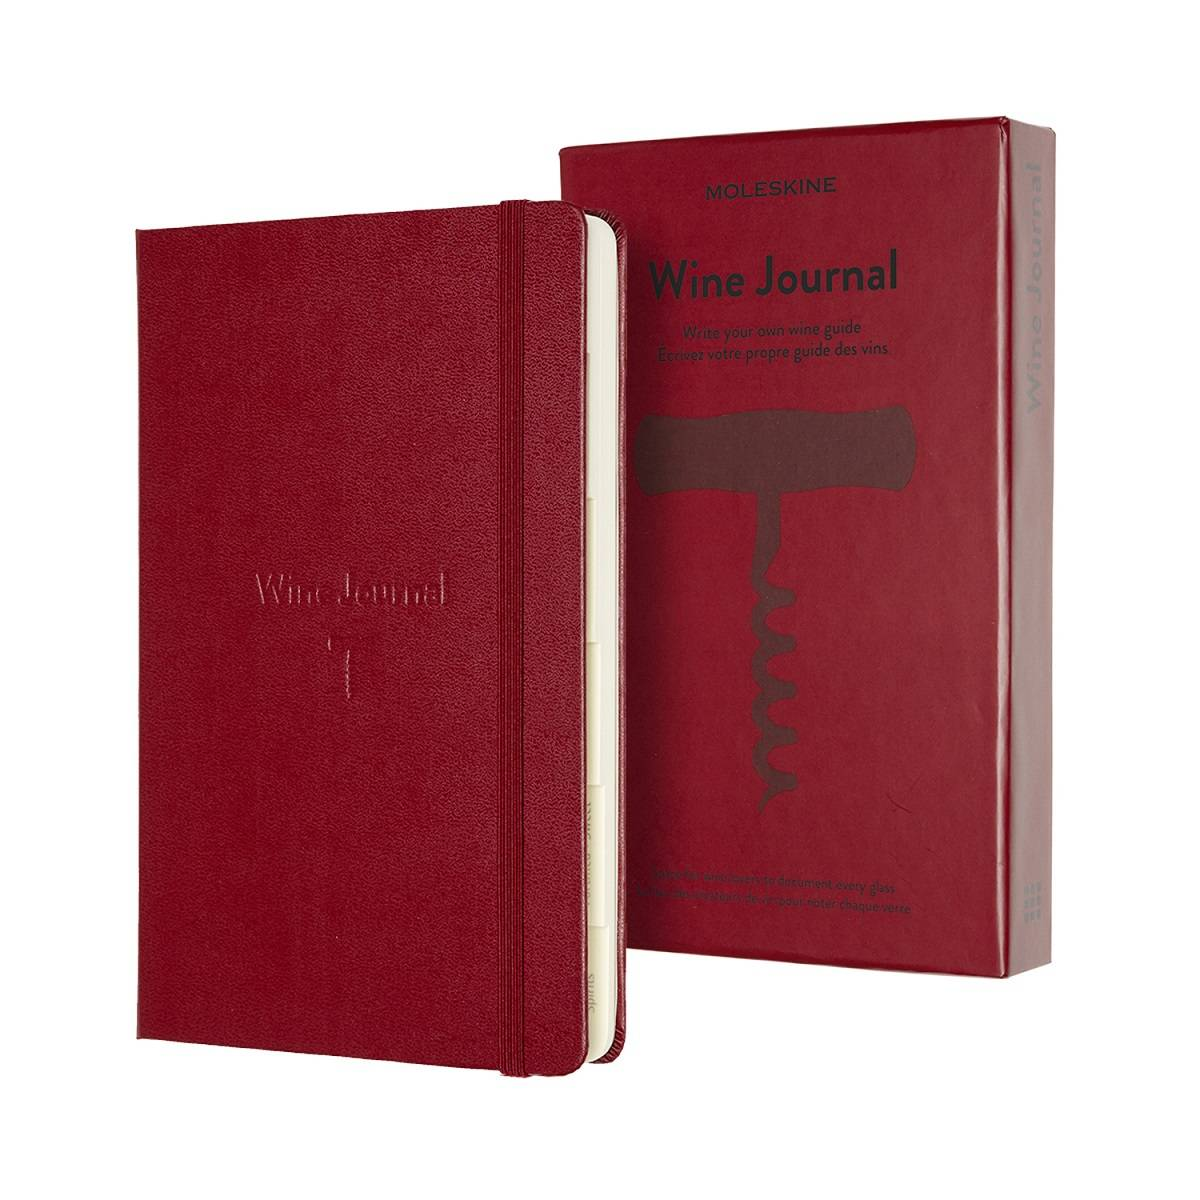 Moleskine Wine Journal, 116pln, lifestyledesigners.pl